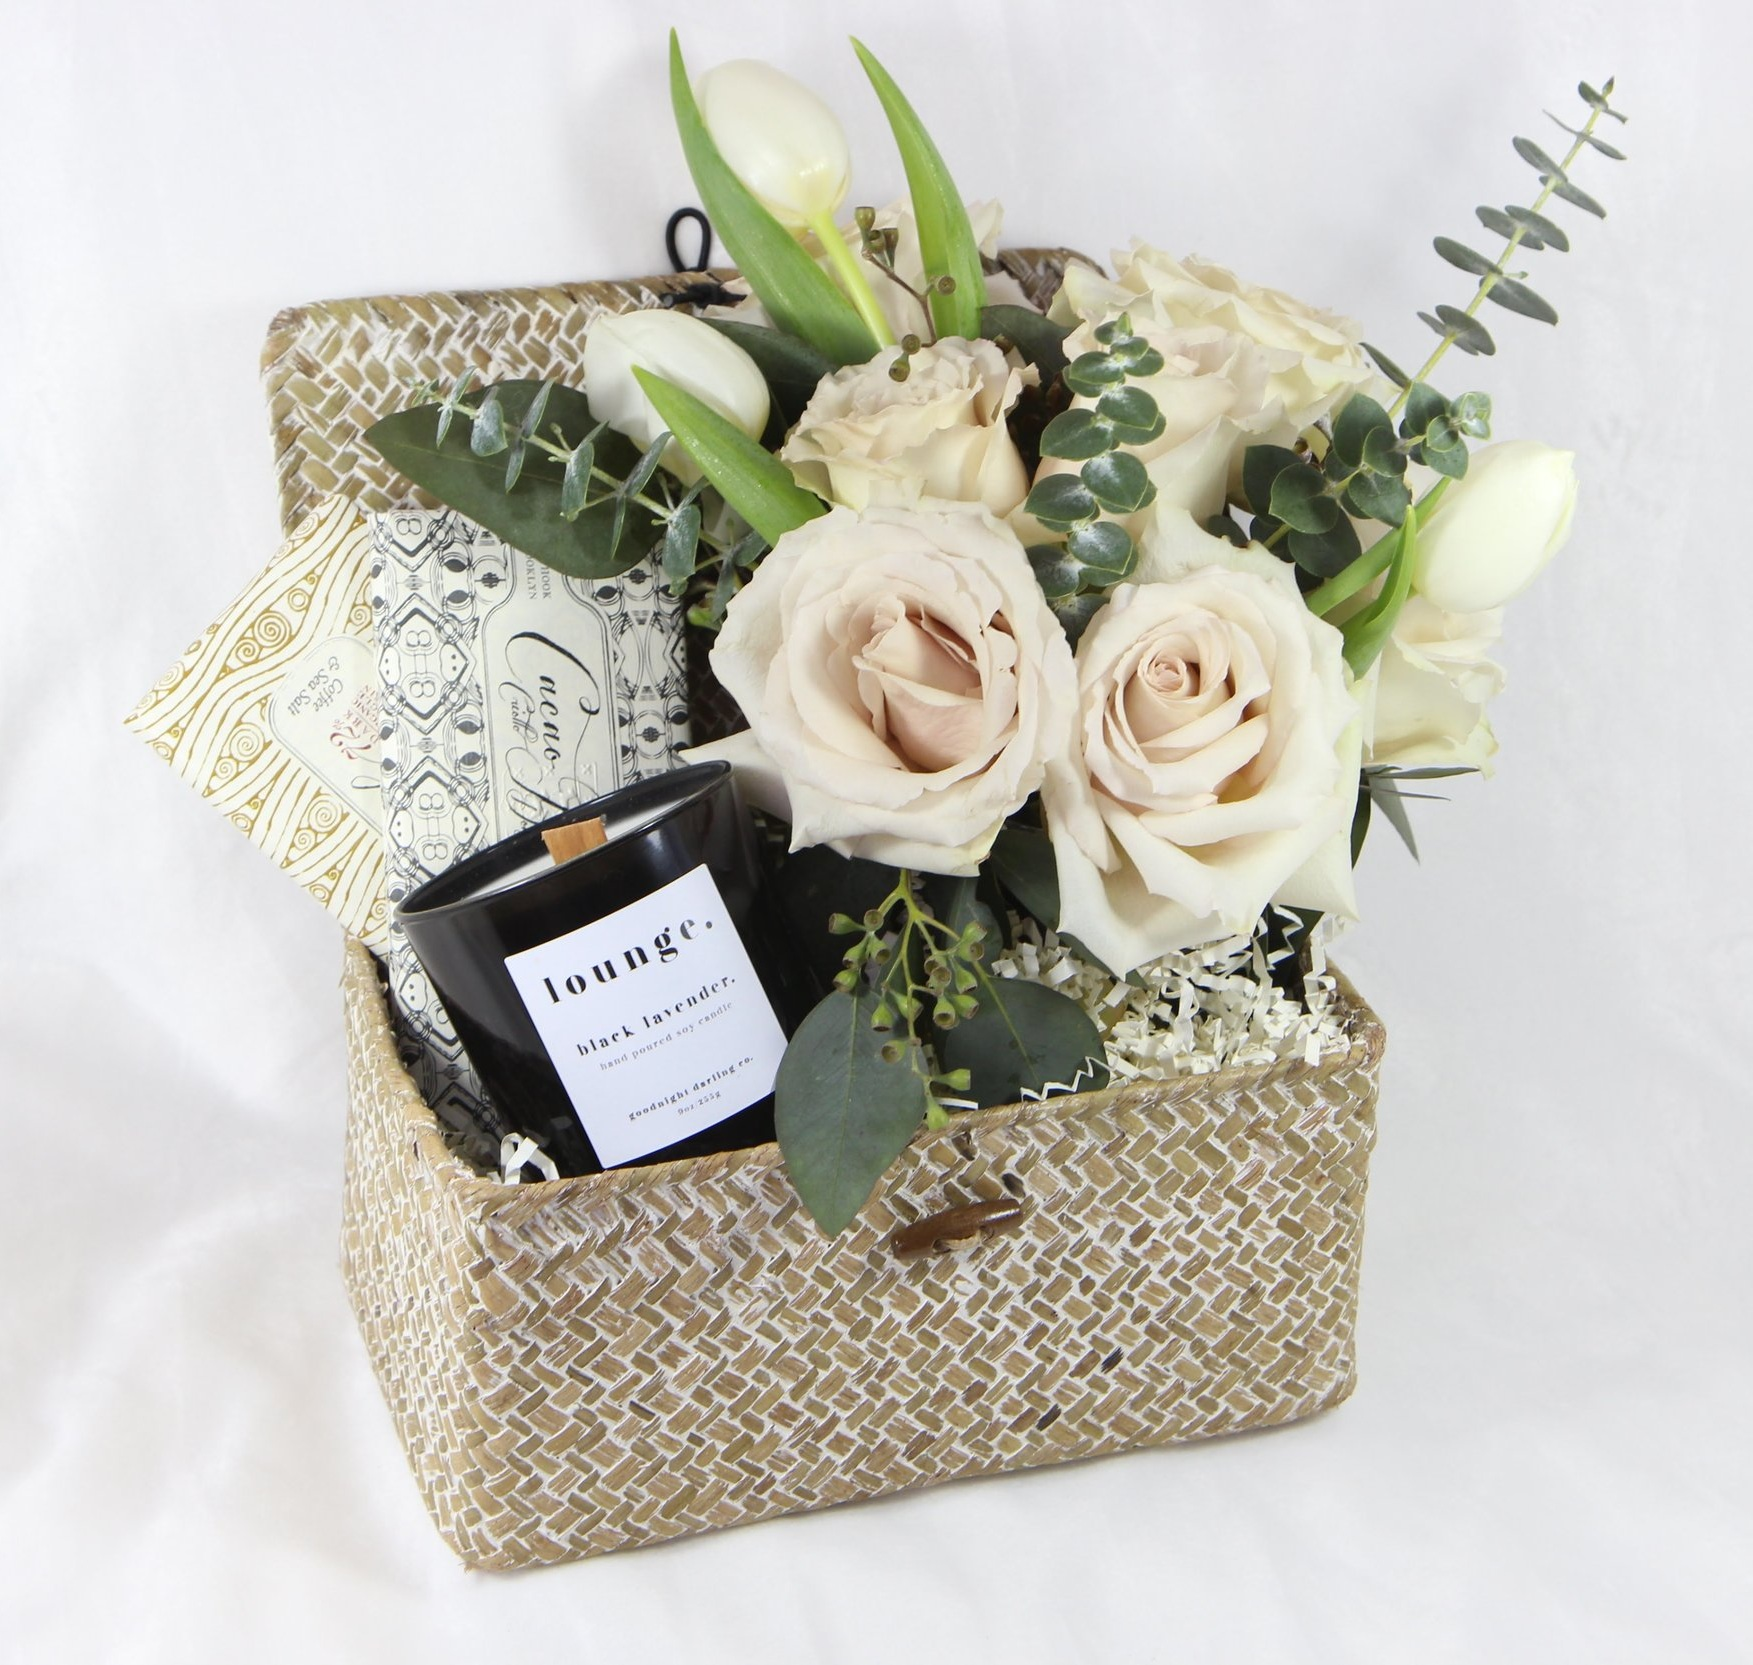 OB   Blooming Baskets - Wow your recipient with one of our pre-curated Blooming Baskets; an assortment of exquisite products in a woven keepsake basket topped with a gorgeous bouquet of seasonal flowers. Our blooming baskets are ready to make a statement this Valentine's Day and beyond. Local Orders only, must order by February 10th to ensure on time delivery.